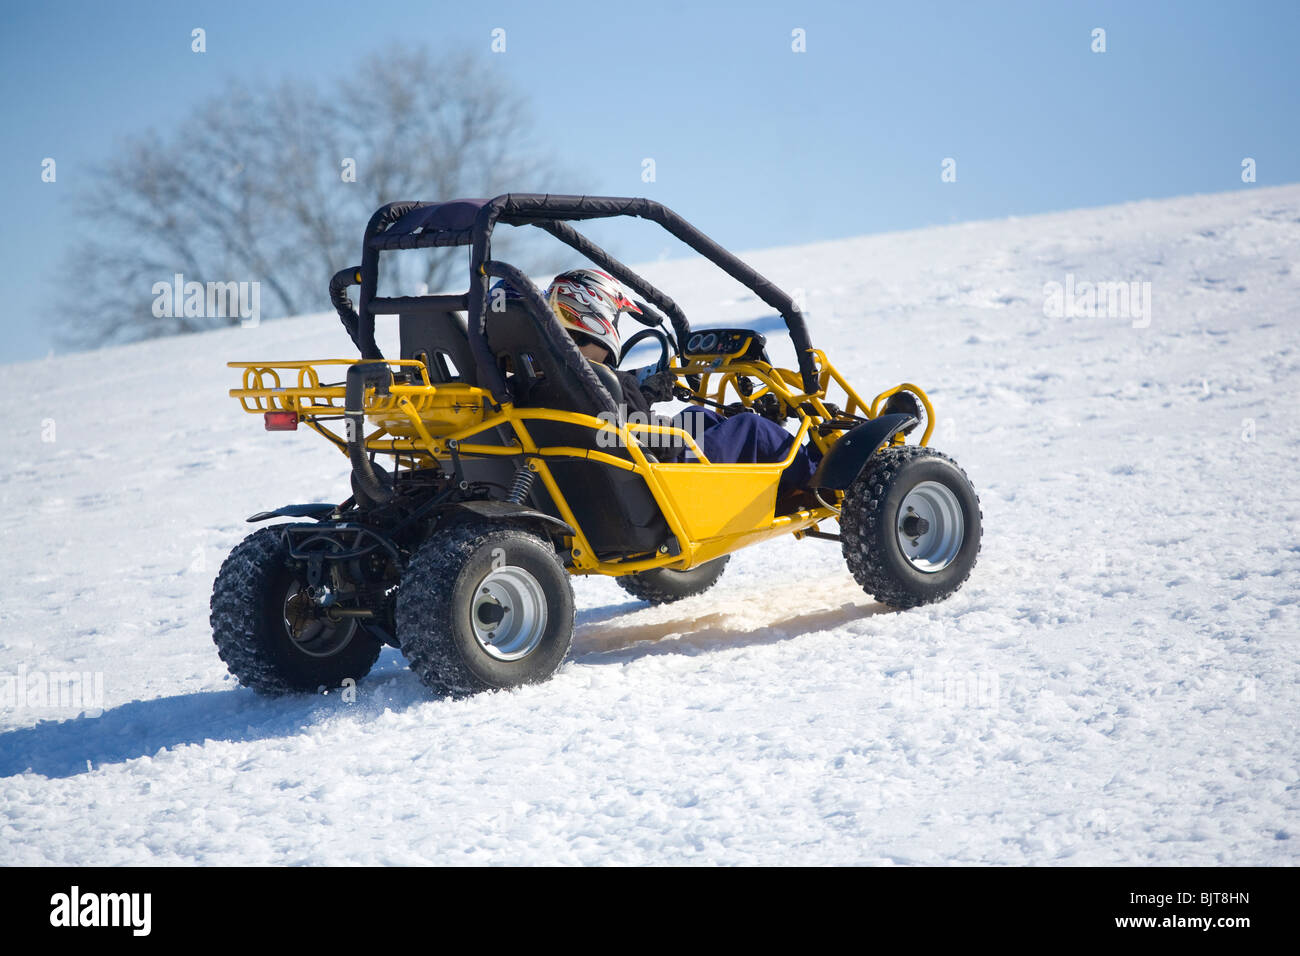 Recreational vehicle on snow, Franklin, Tennessee - Stock Image